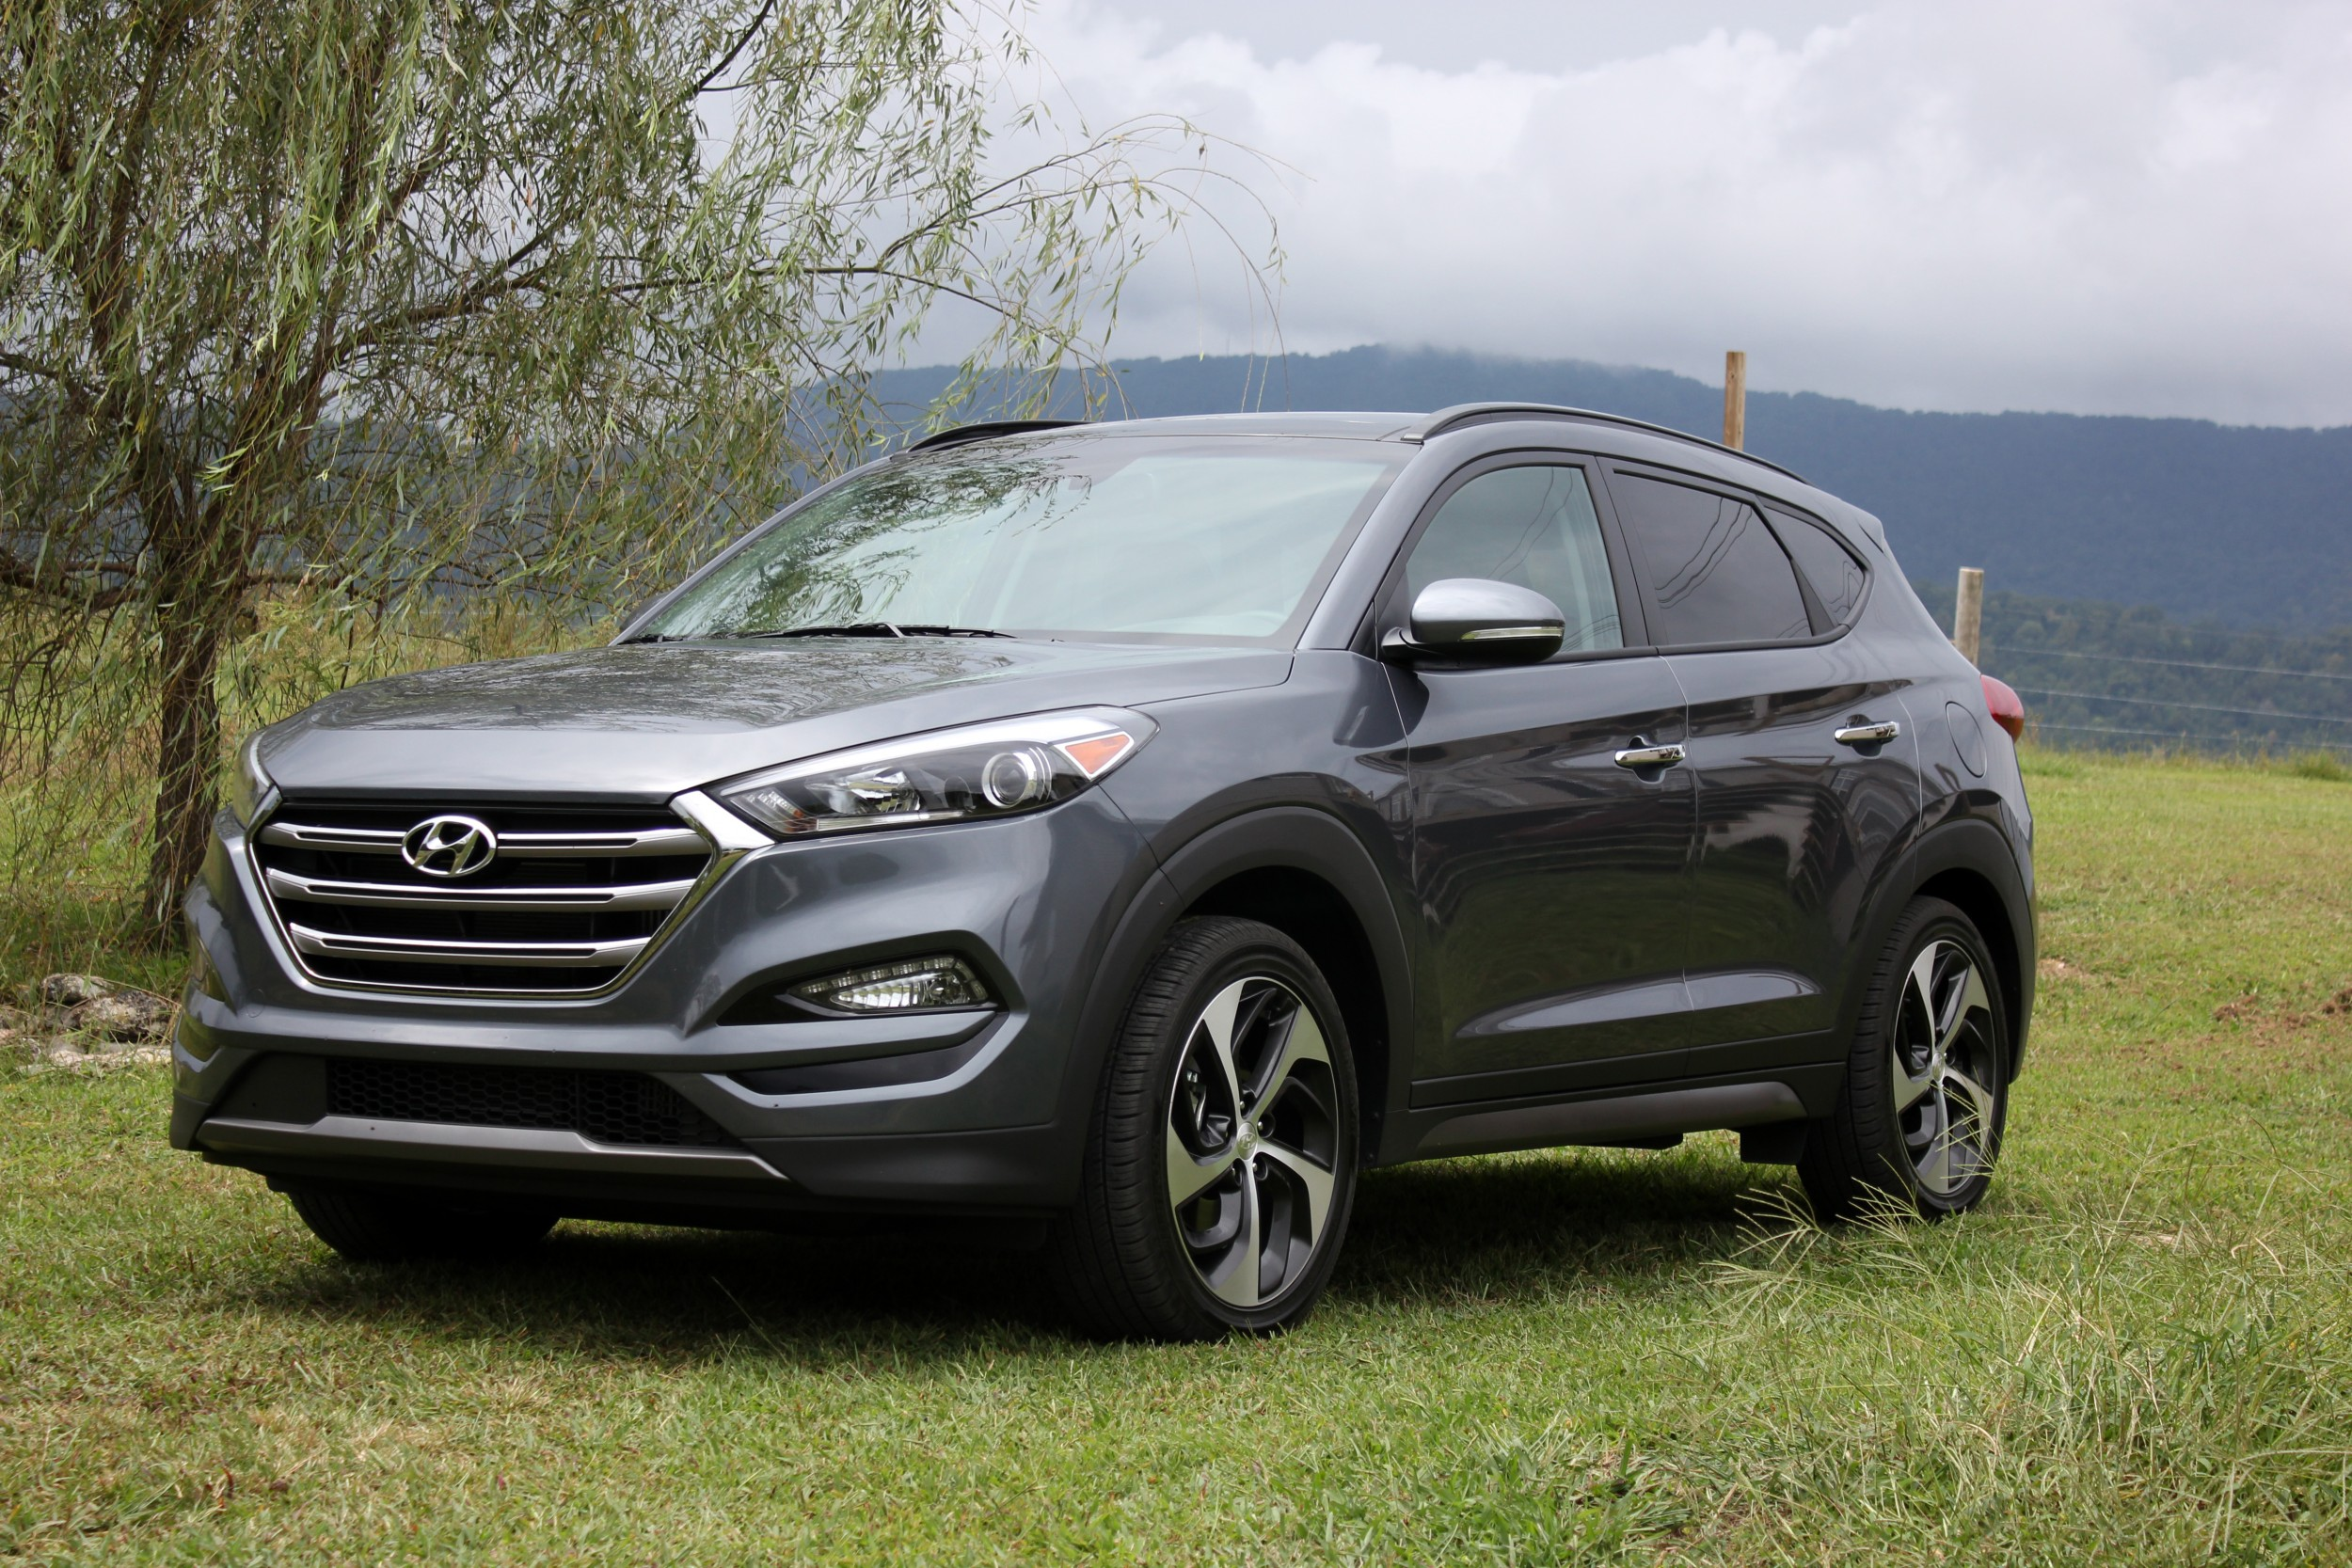 2016 hyundai tucson review autotalk. Black Bedroom Furniture Sets. Home Design Ideas